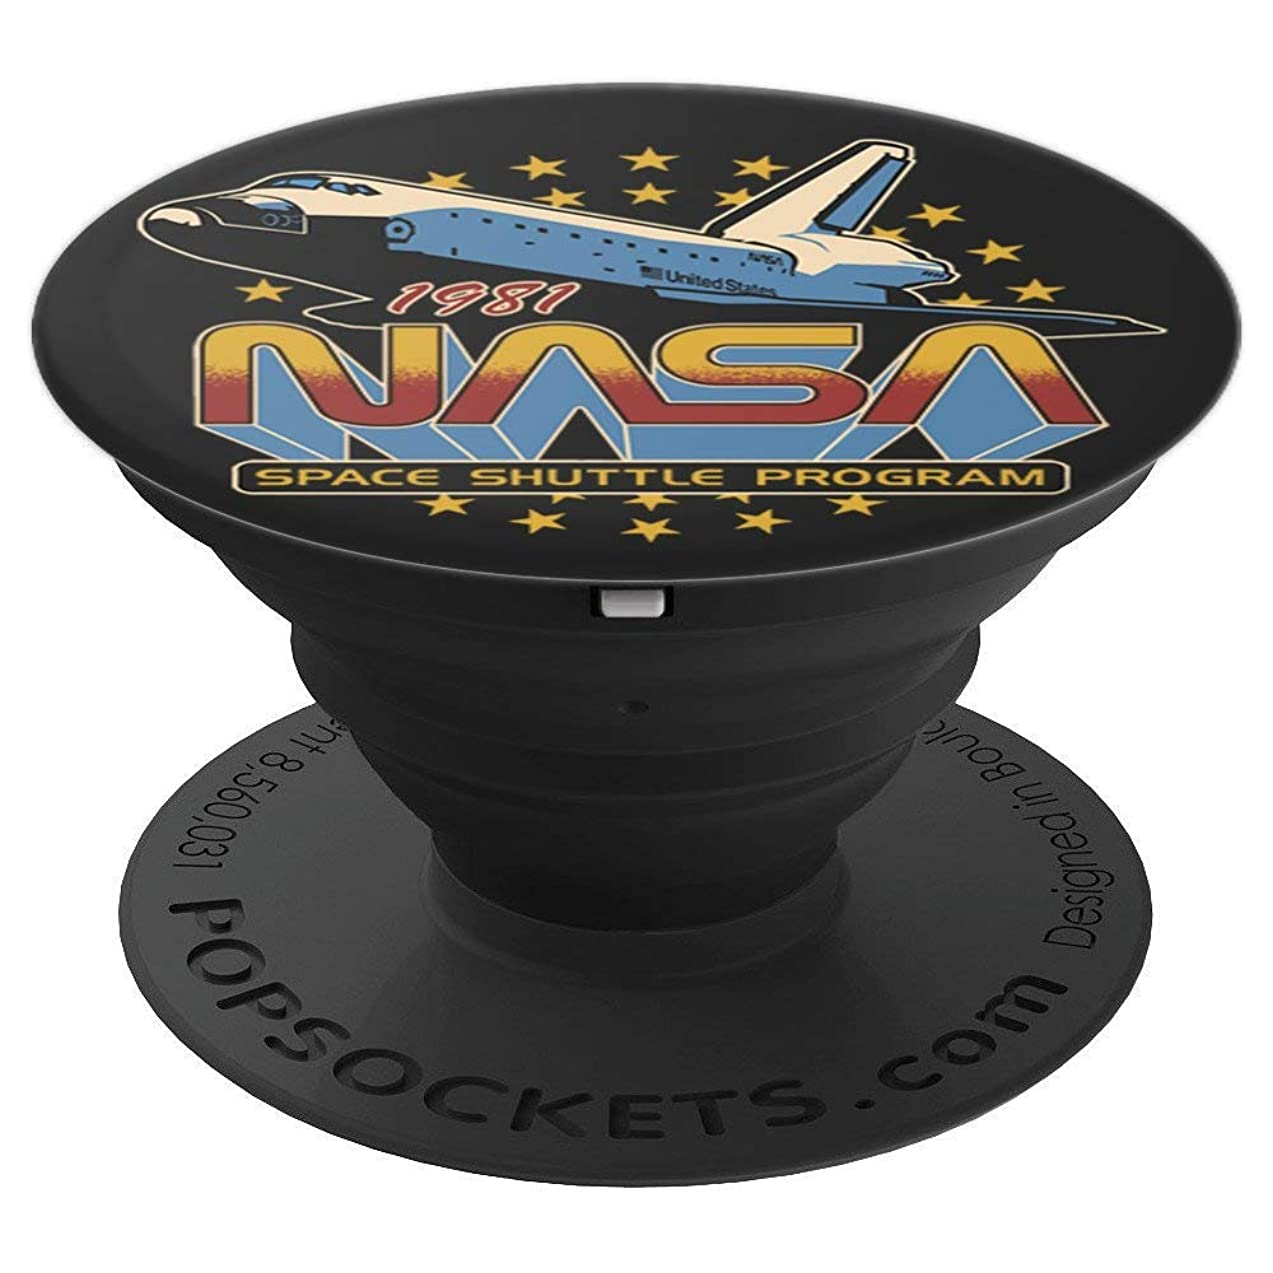 NASA Space Shuttle Program 1981 - PopSockets Grip and Stand for Phones and Tablets